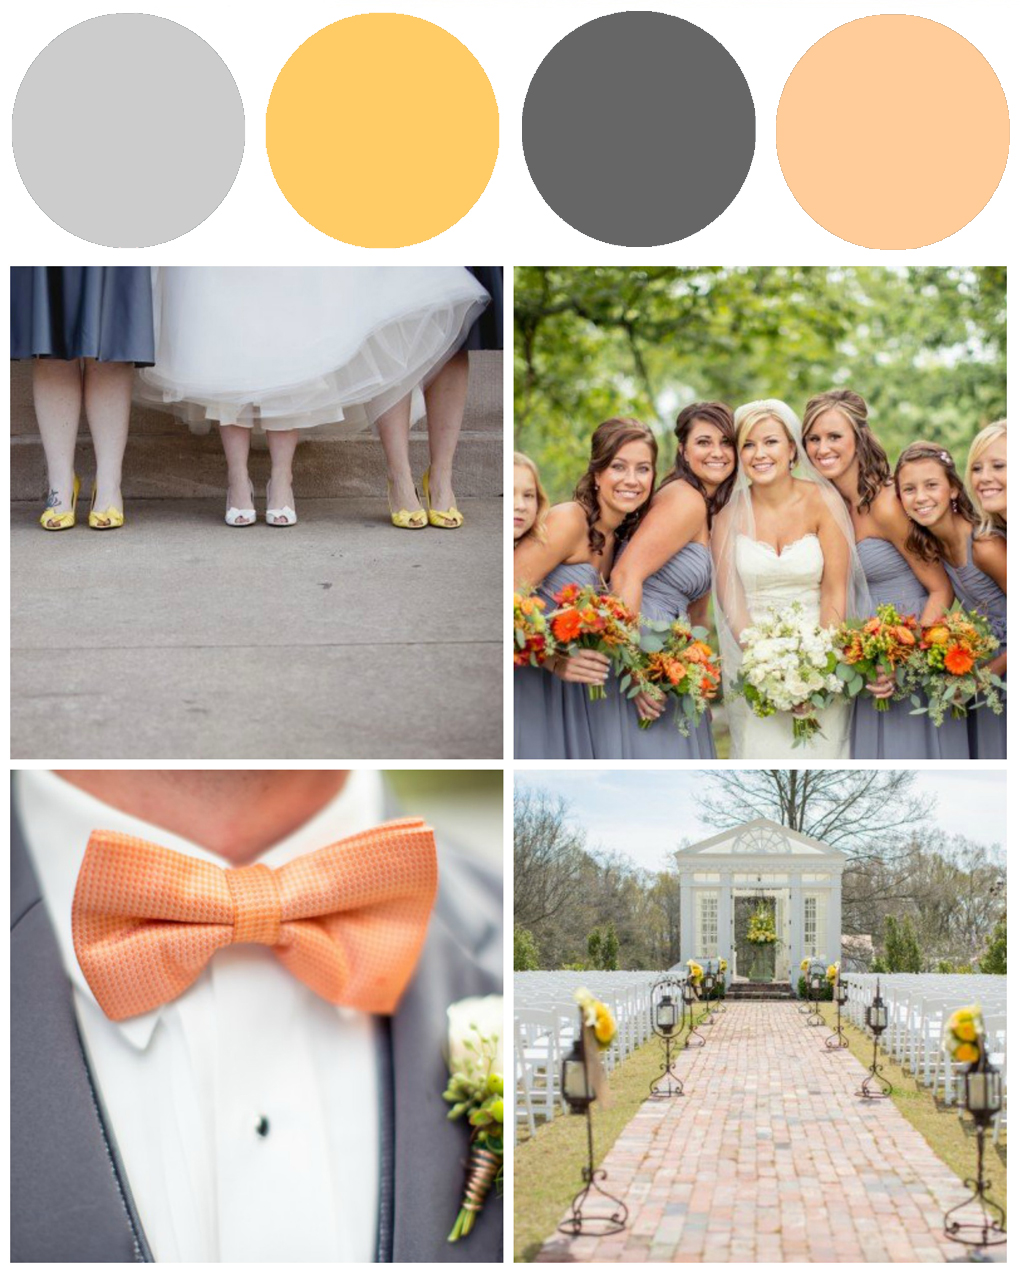 Yellow & Gray Preppy Wedding Colors - Preppy Wedding Style